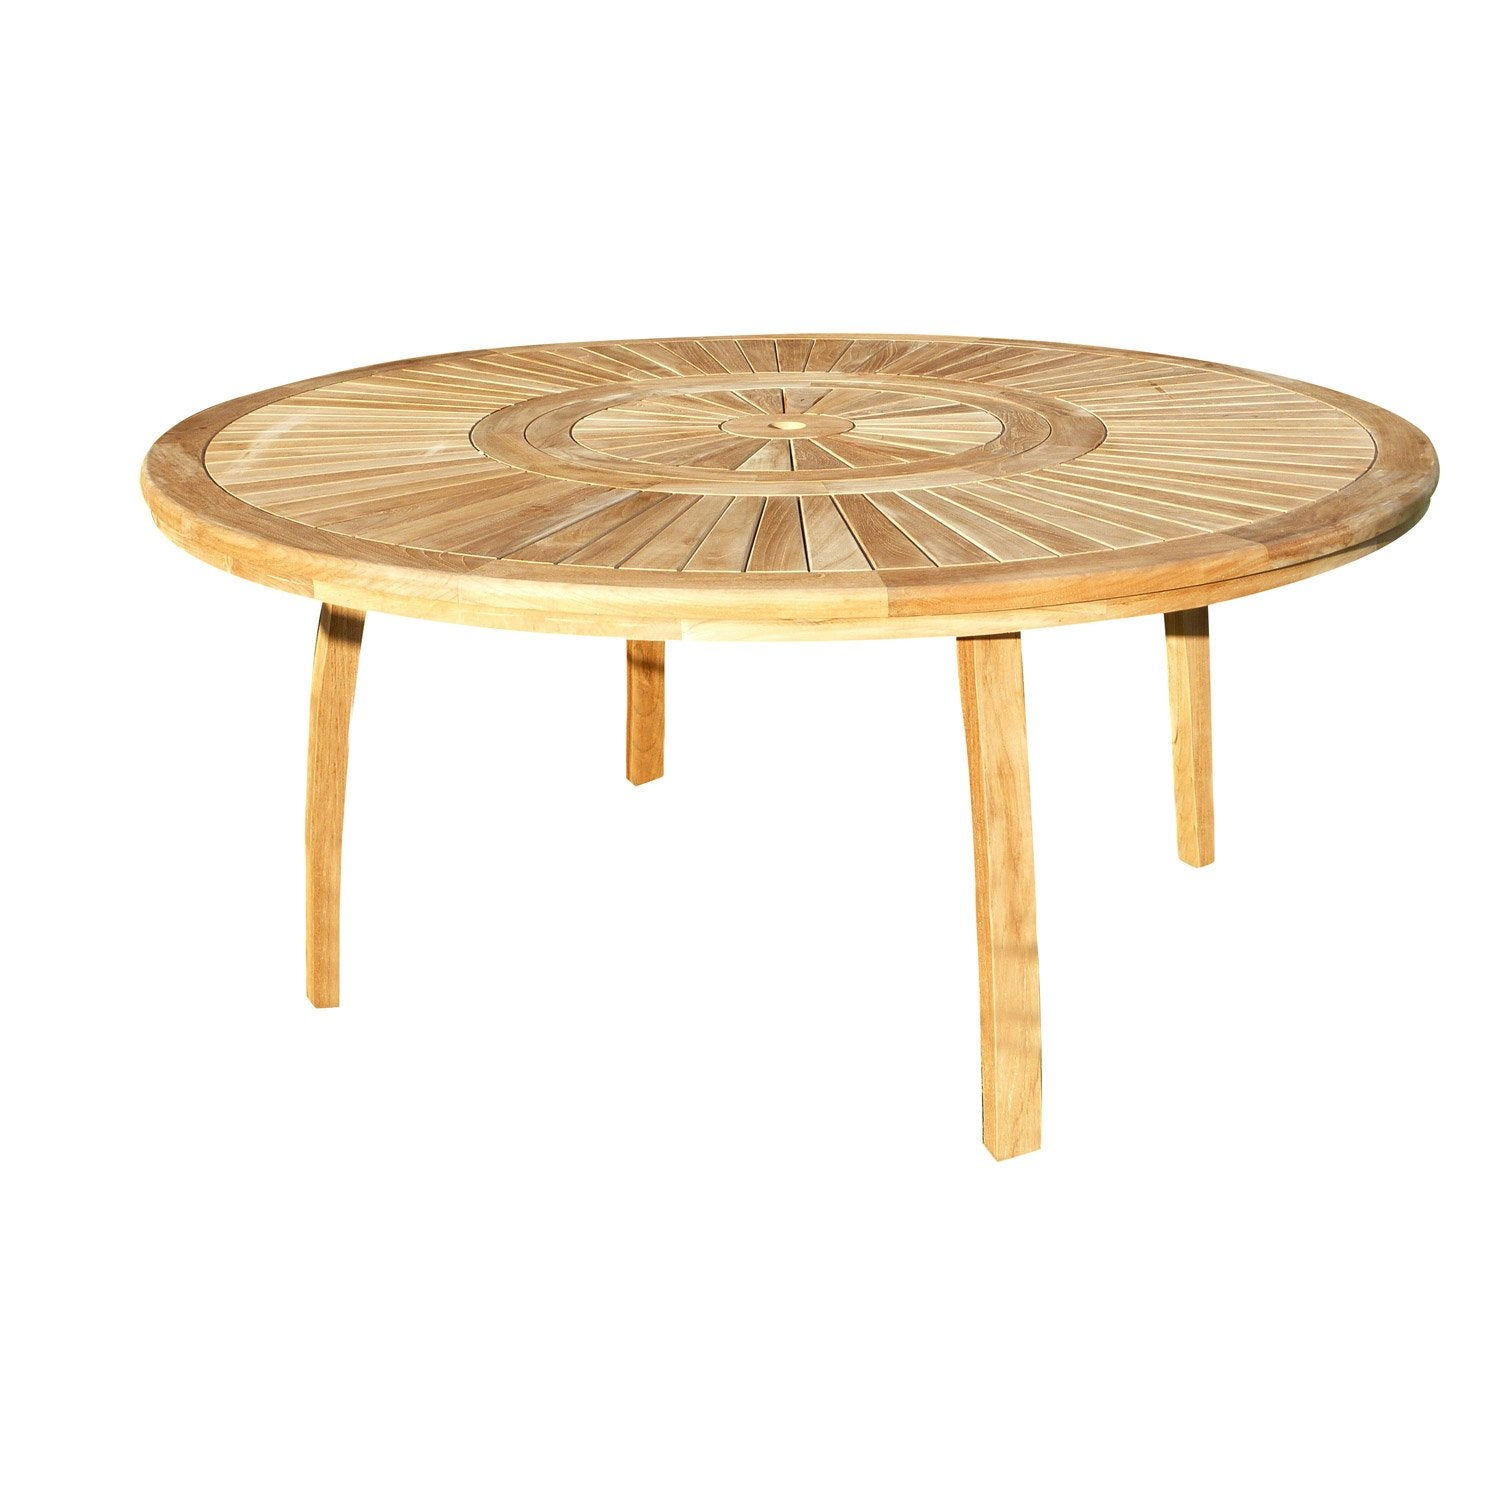 Table de jardin orion ronde naturel 8 personnes leroy merlin for Table jardin 8 personnes